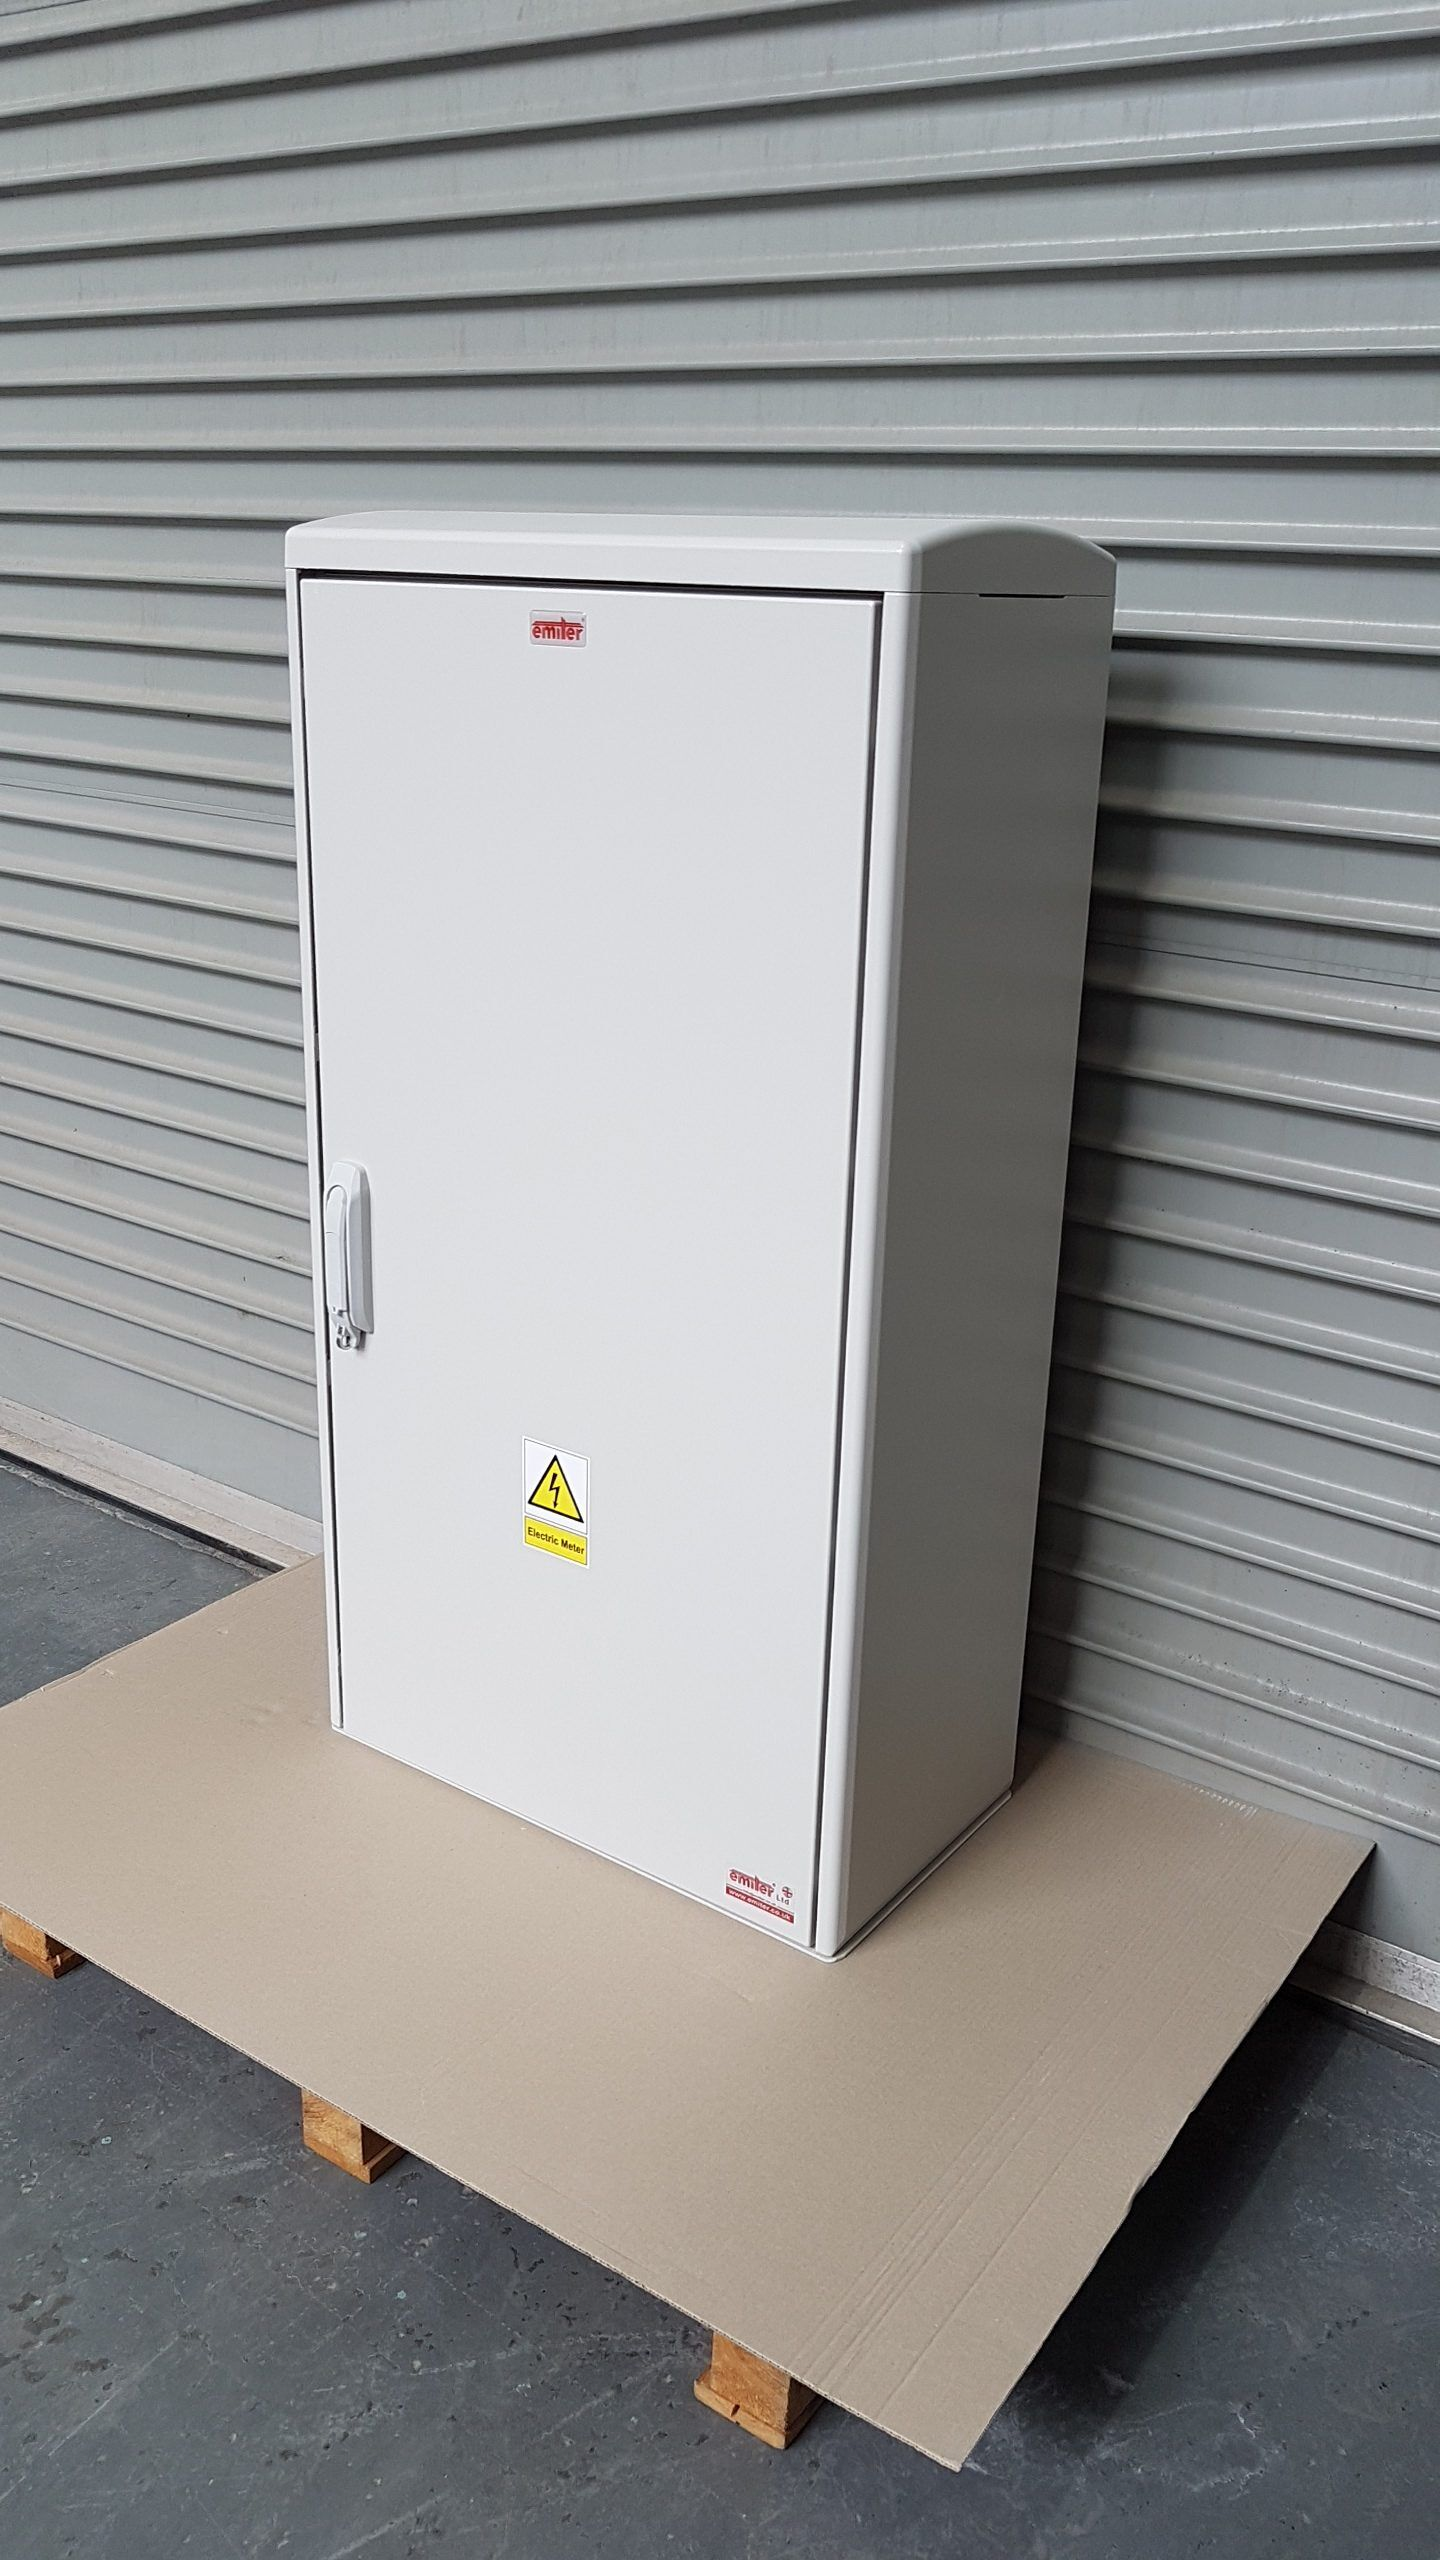 GRP Electric Meter Box W605 x H1150 x D320 mm, Right Side View